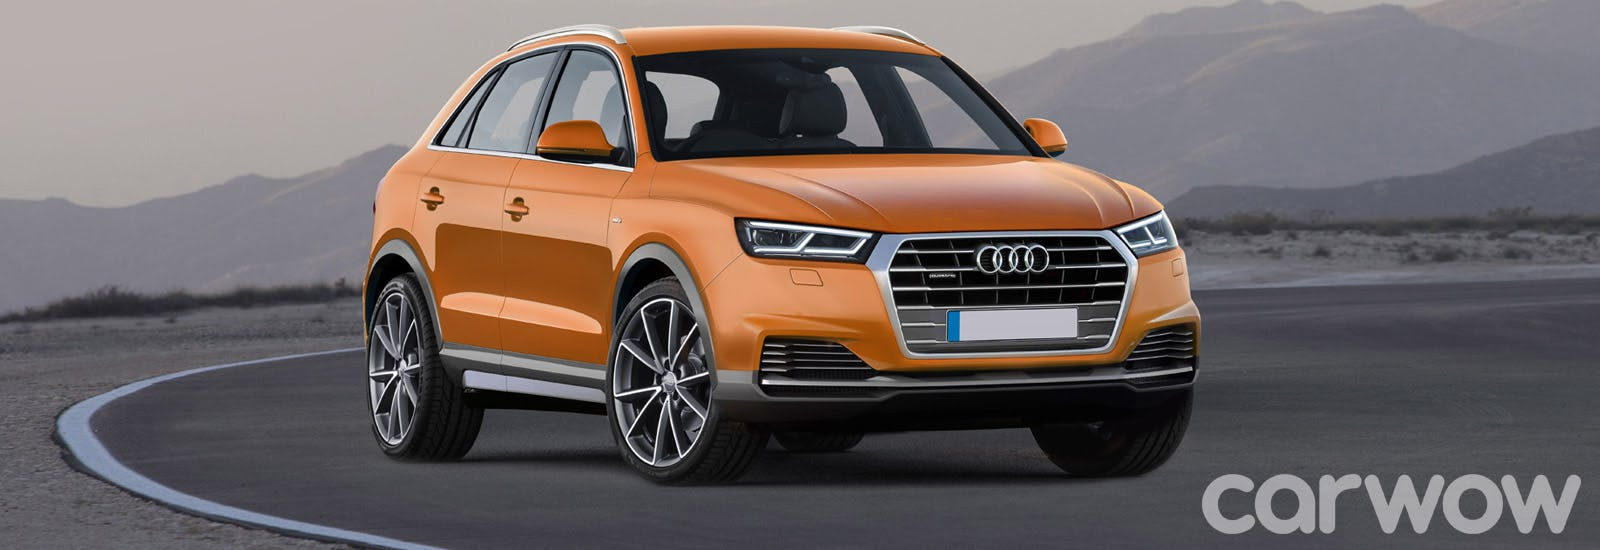 2018 audi q3 price specs and release date carwow. Black Bedroom Furniture Sets. Home Design Ideas